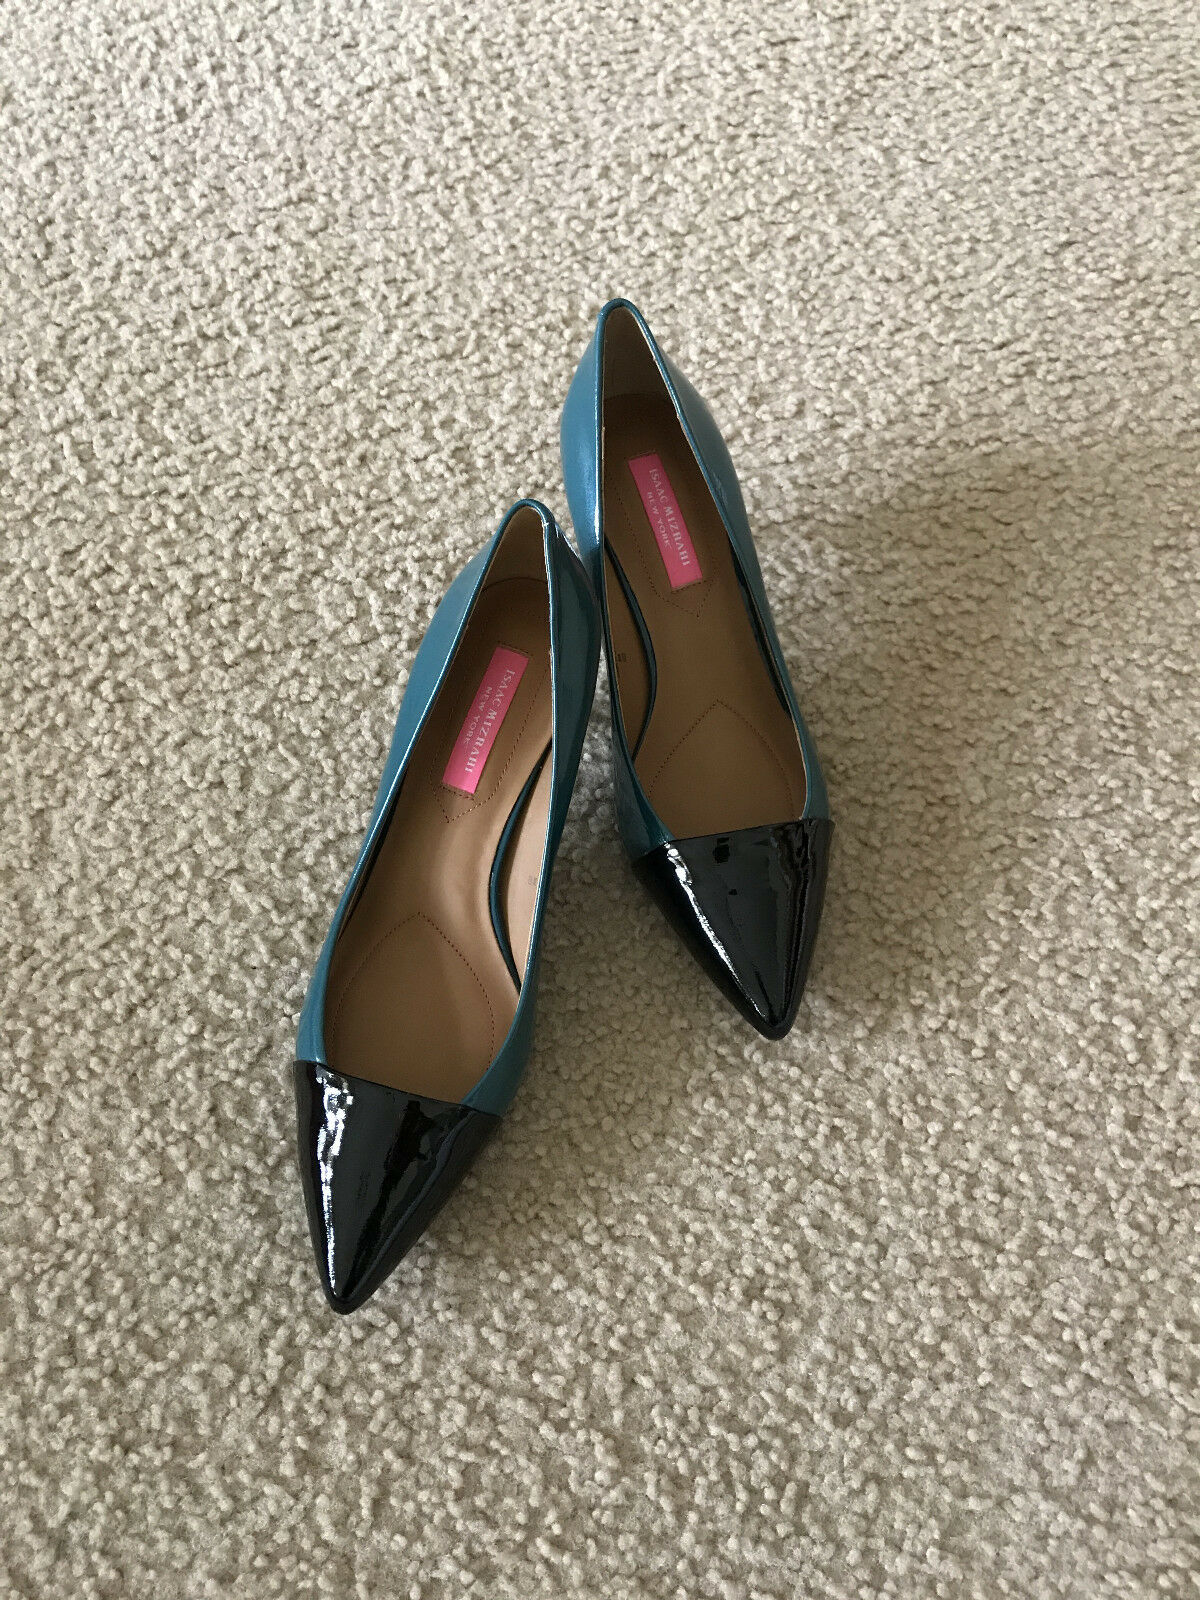 NIB Isaac Mizrahi New York Jabria Jabria Jabria Pump dark Grün patent leather 6 6.5 7 8 8.5 fbab8b